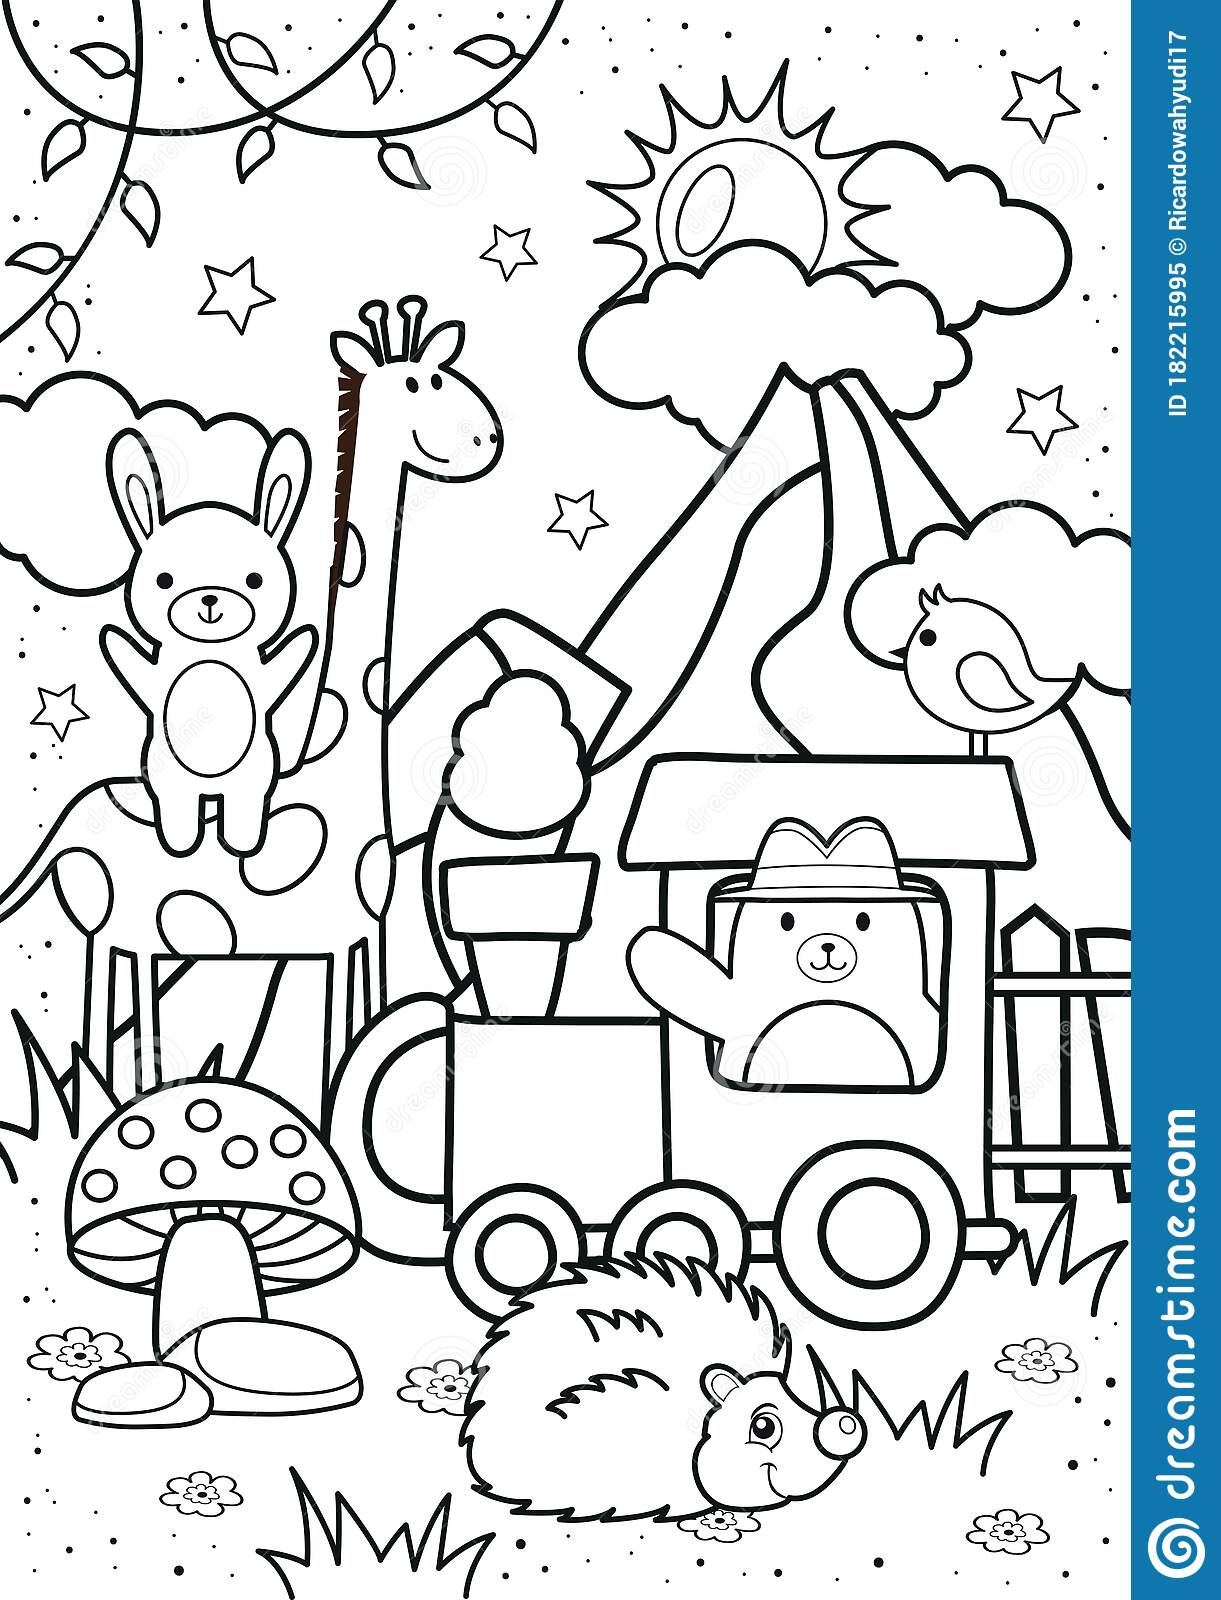 Cute Bear And Friends In The Forest Coloring Pages Stock Vector Illustration Of Baby Black 182215995